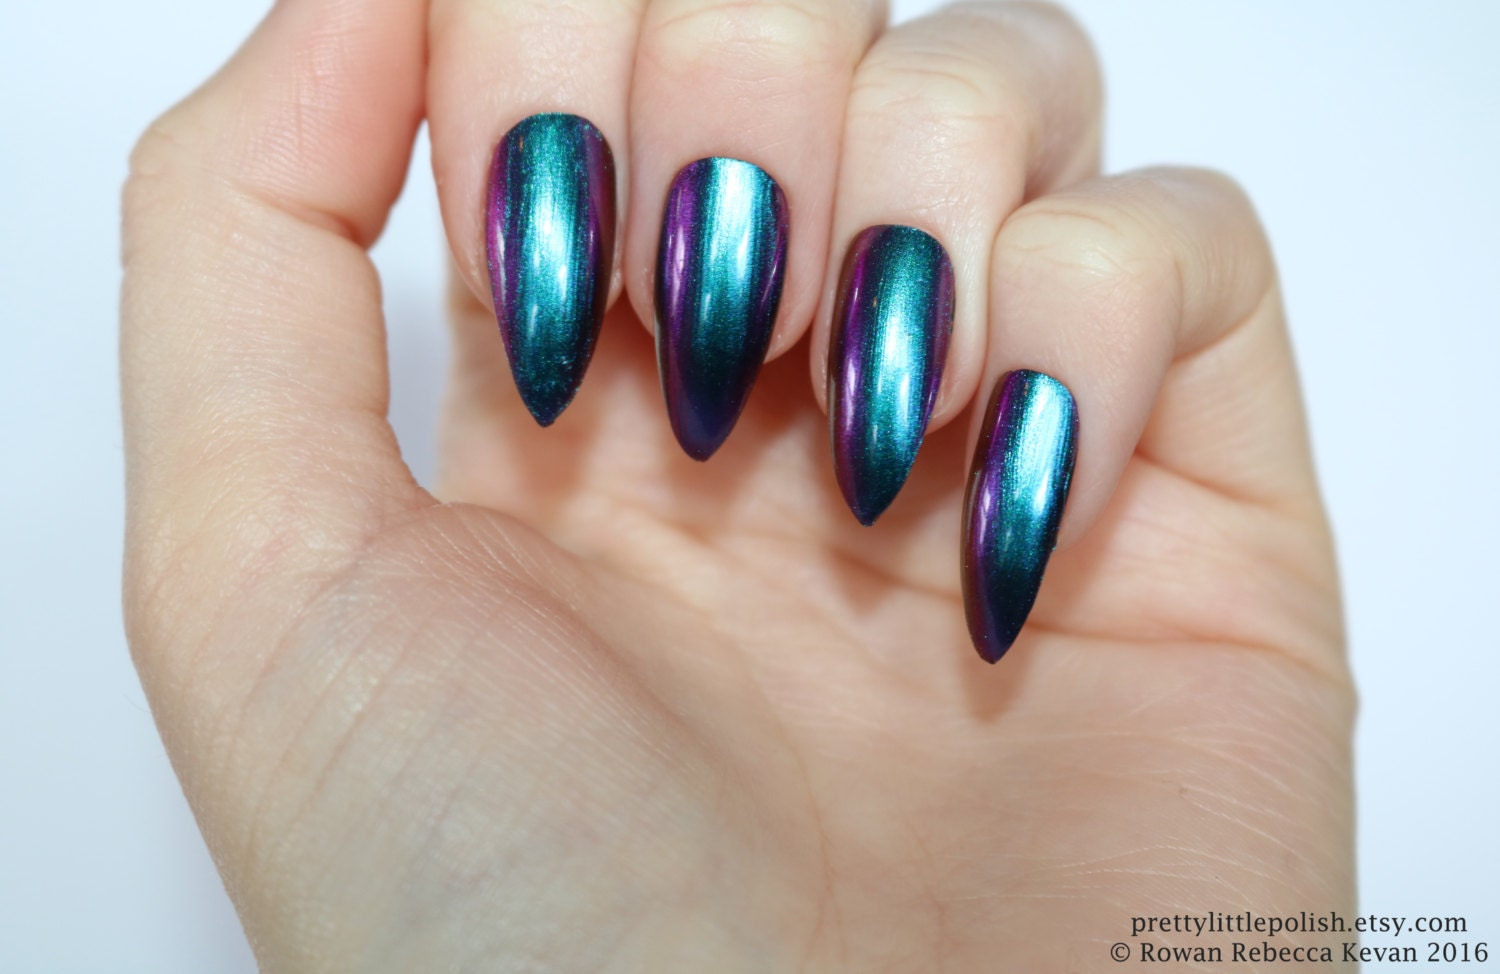 Teal and black acrylic nails